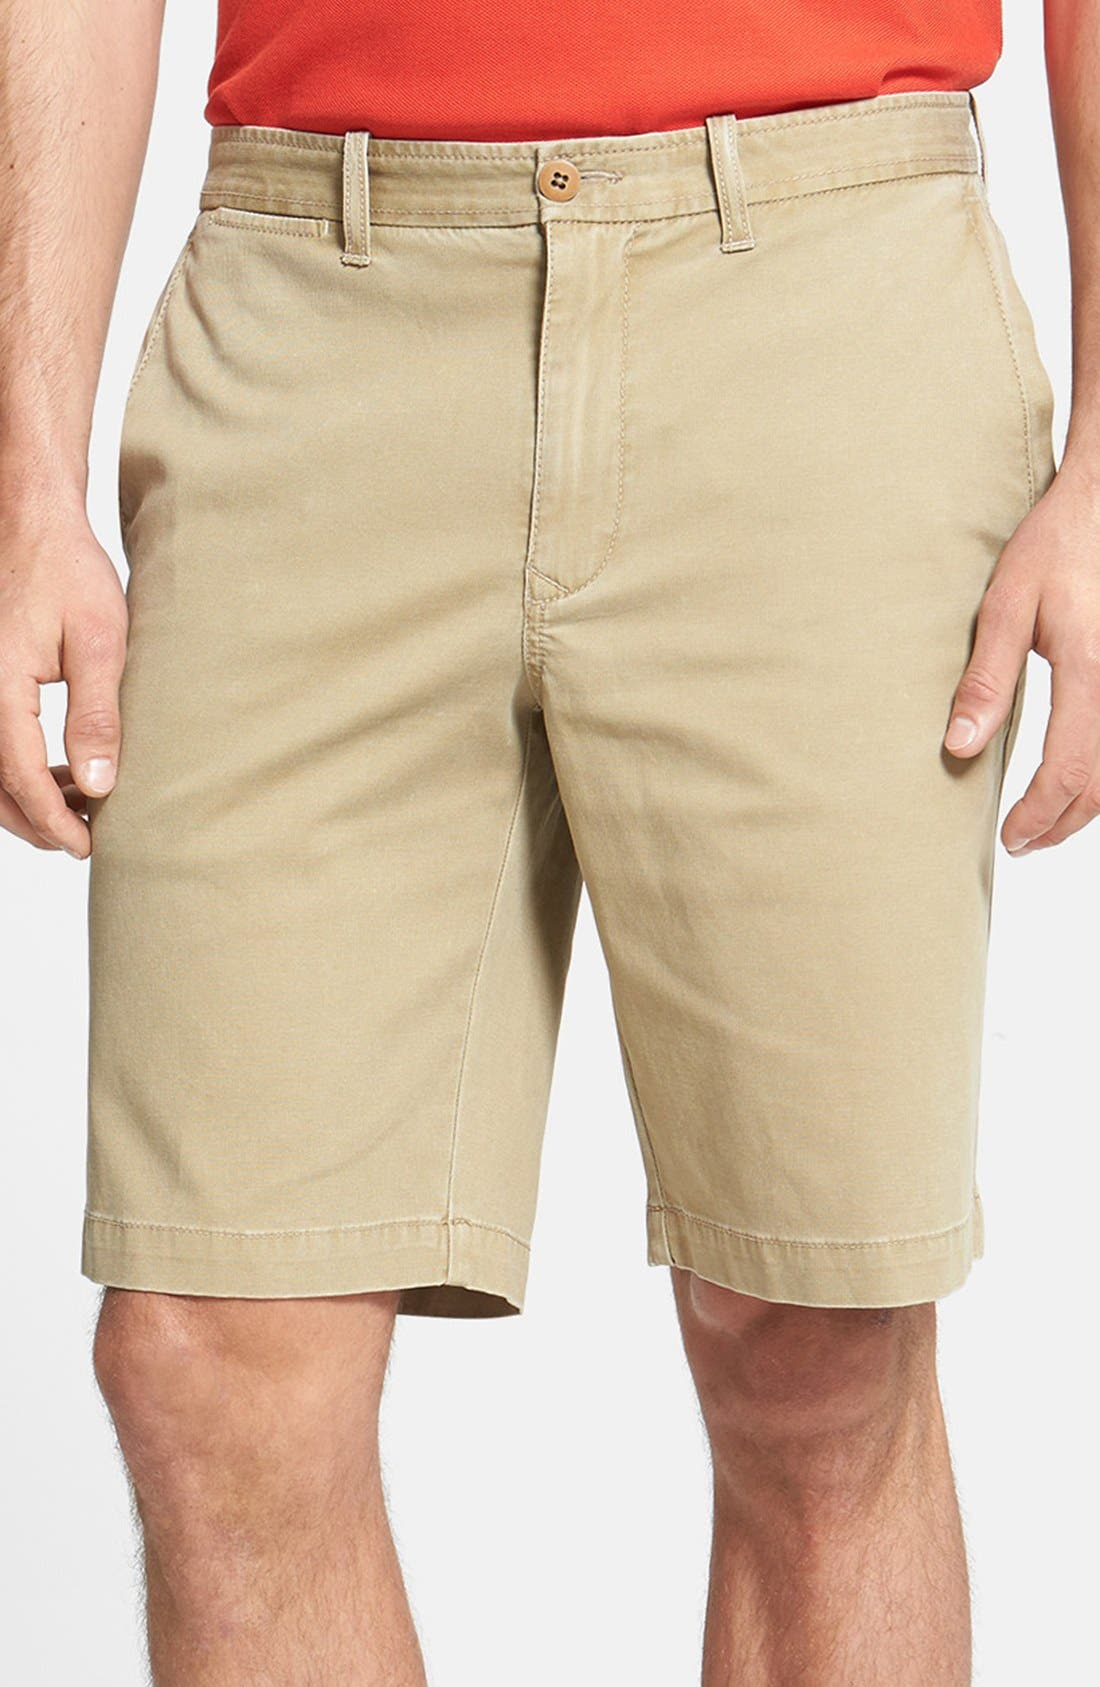 'Bedford & Son' Corduroy Walking Shorts,                             Main thumbnail 1, color,                             200